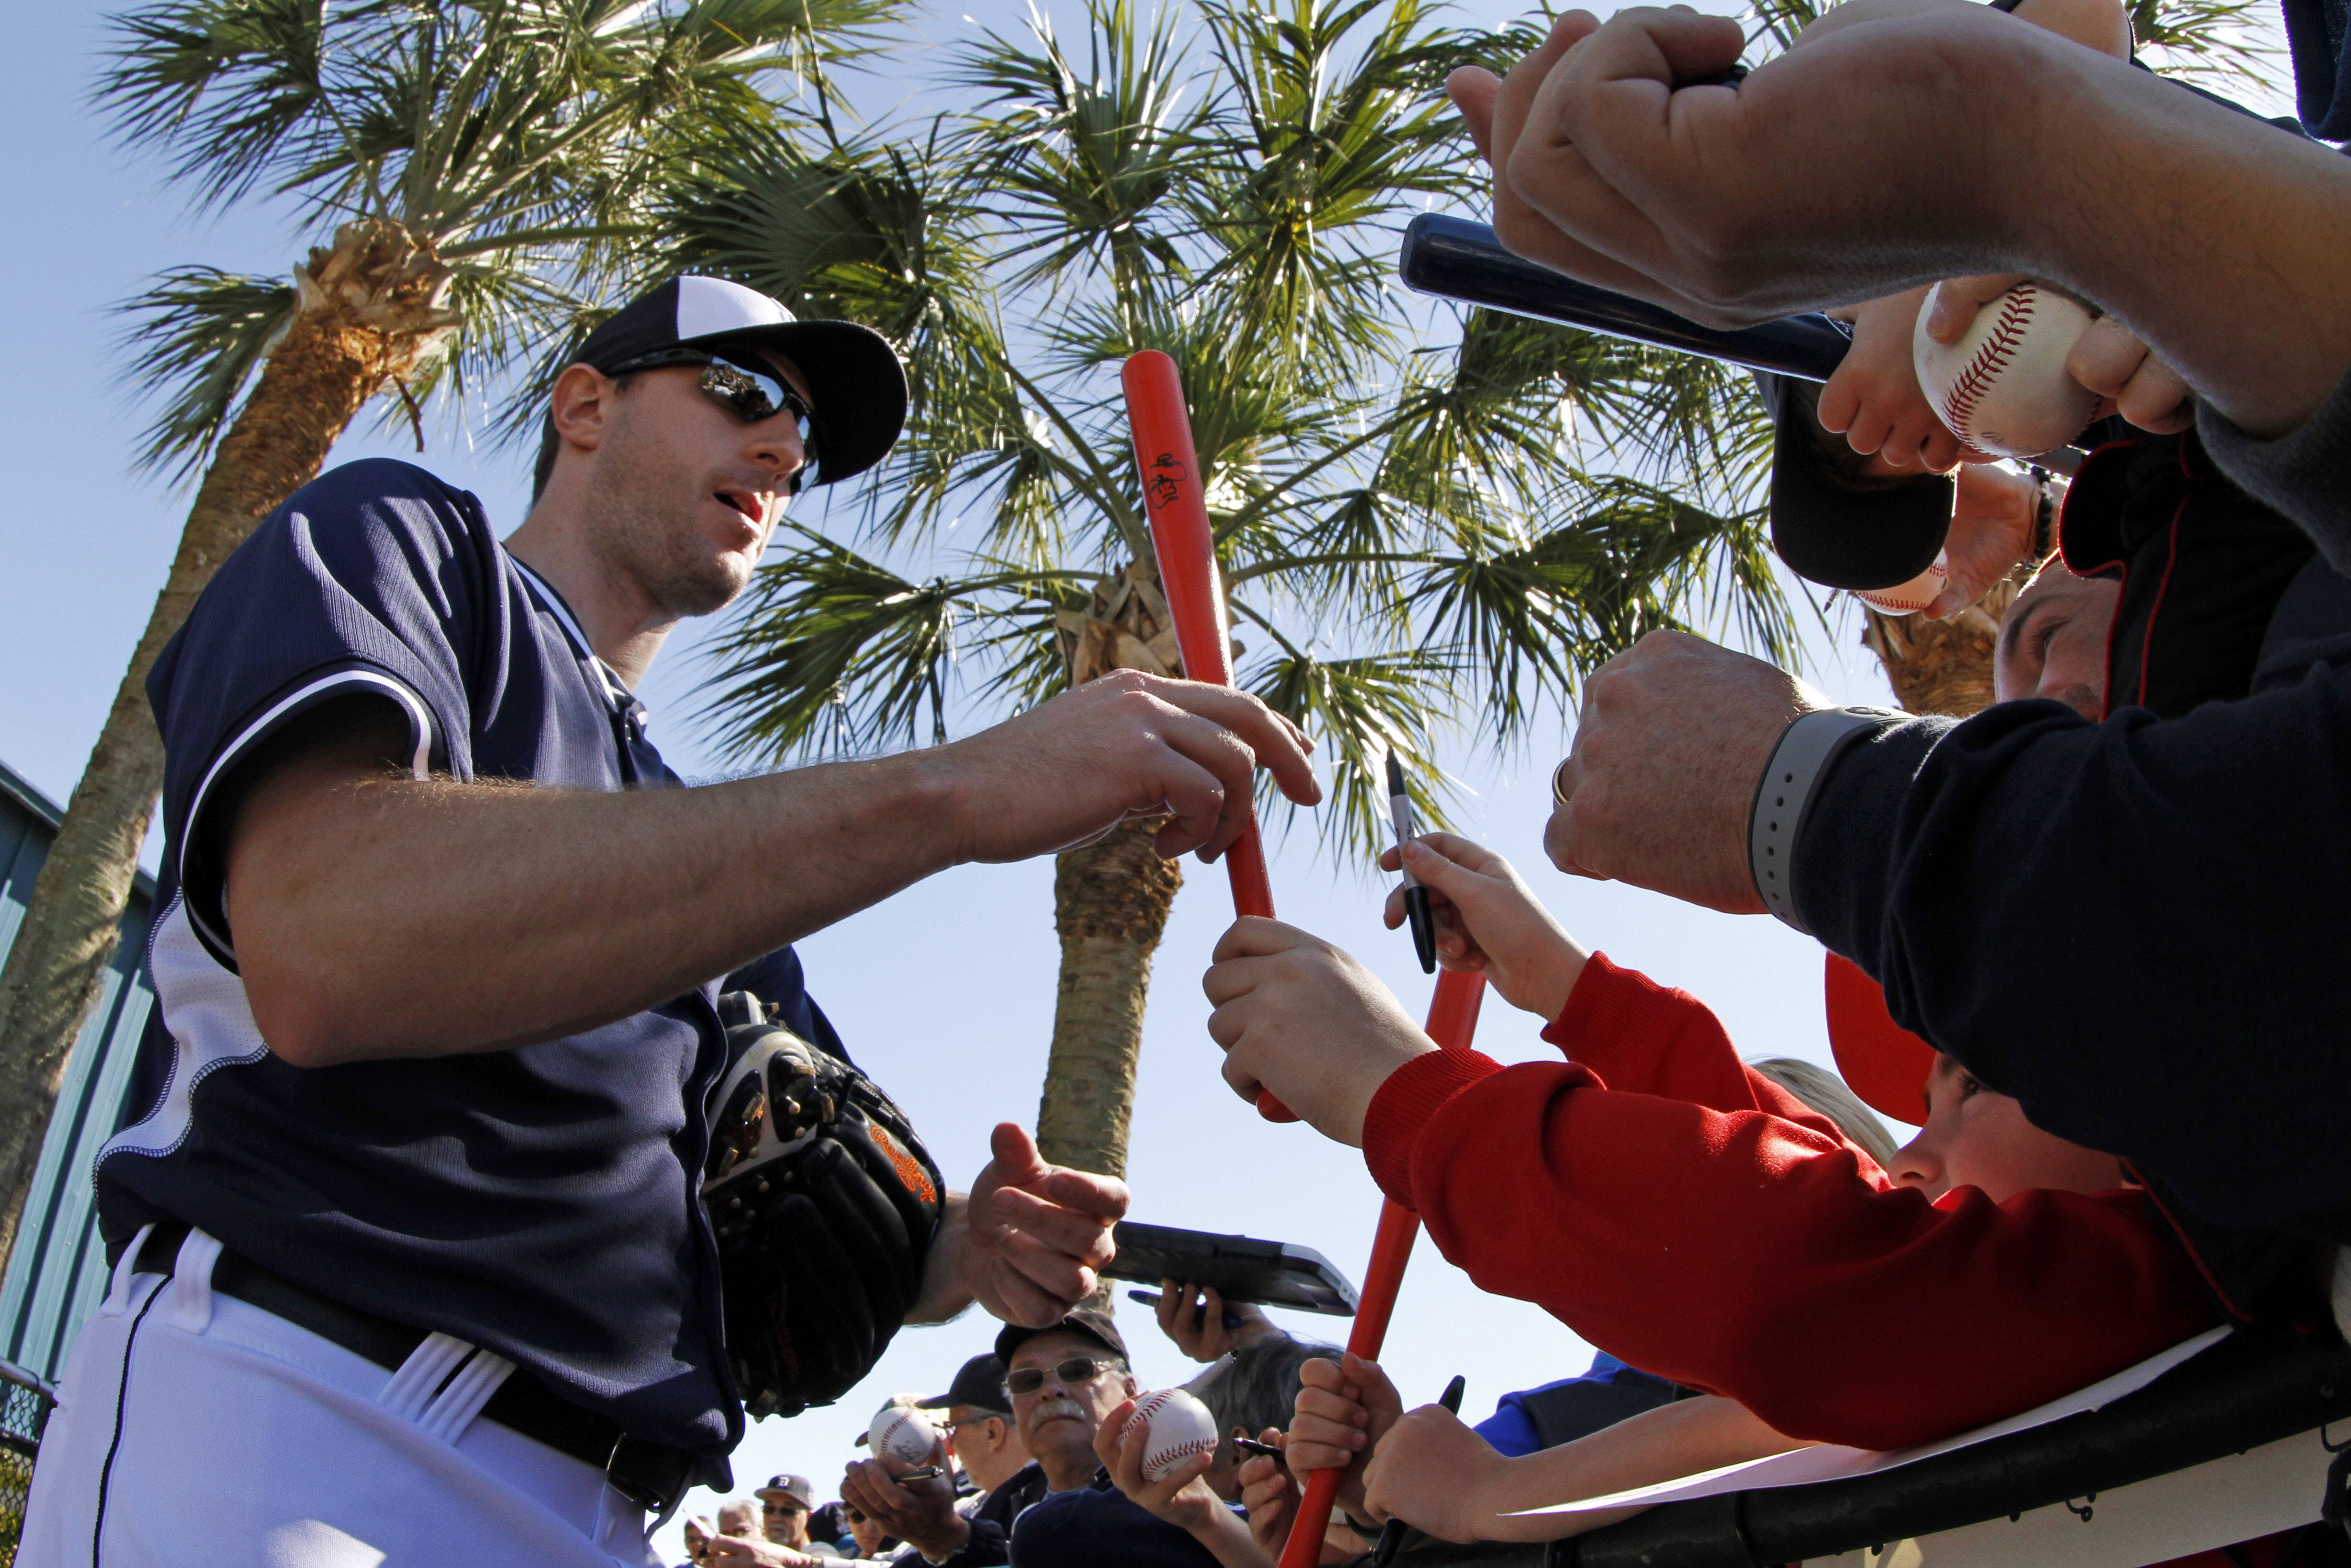 Detroit Tigers pitcher Max Scherzer signs autographs for fans Friday after the Tigers' first day of spring training for pitchers and catchers in Lakeland, Fla.